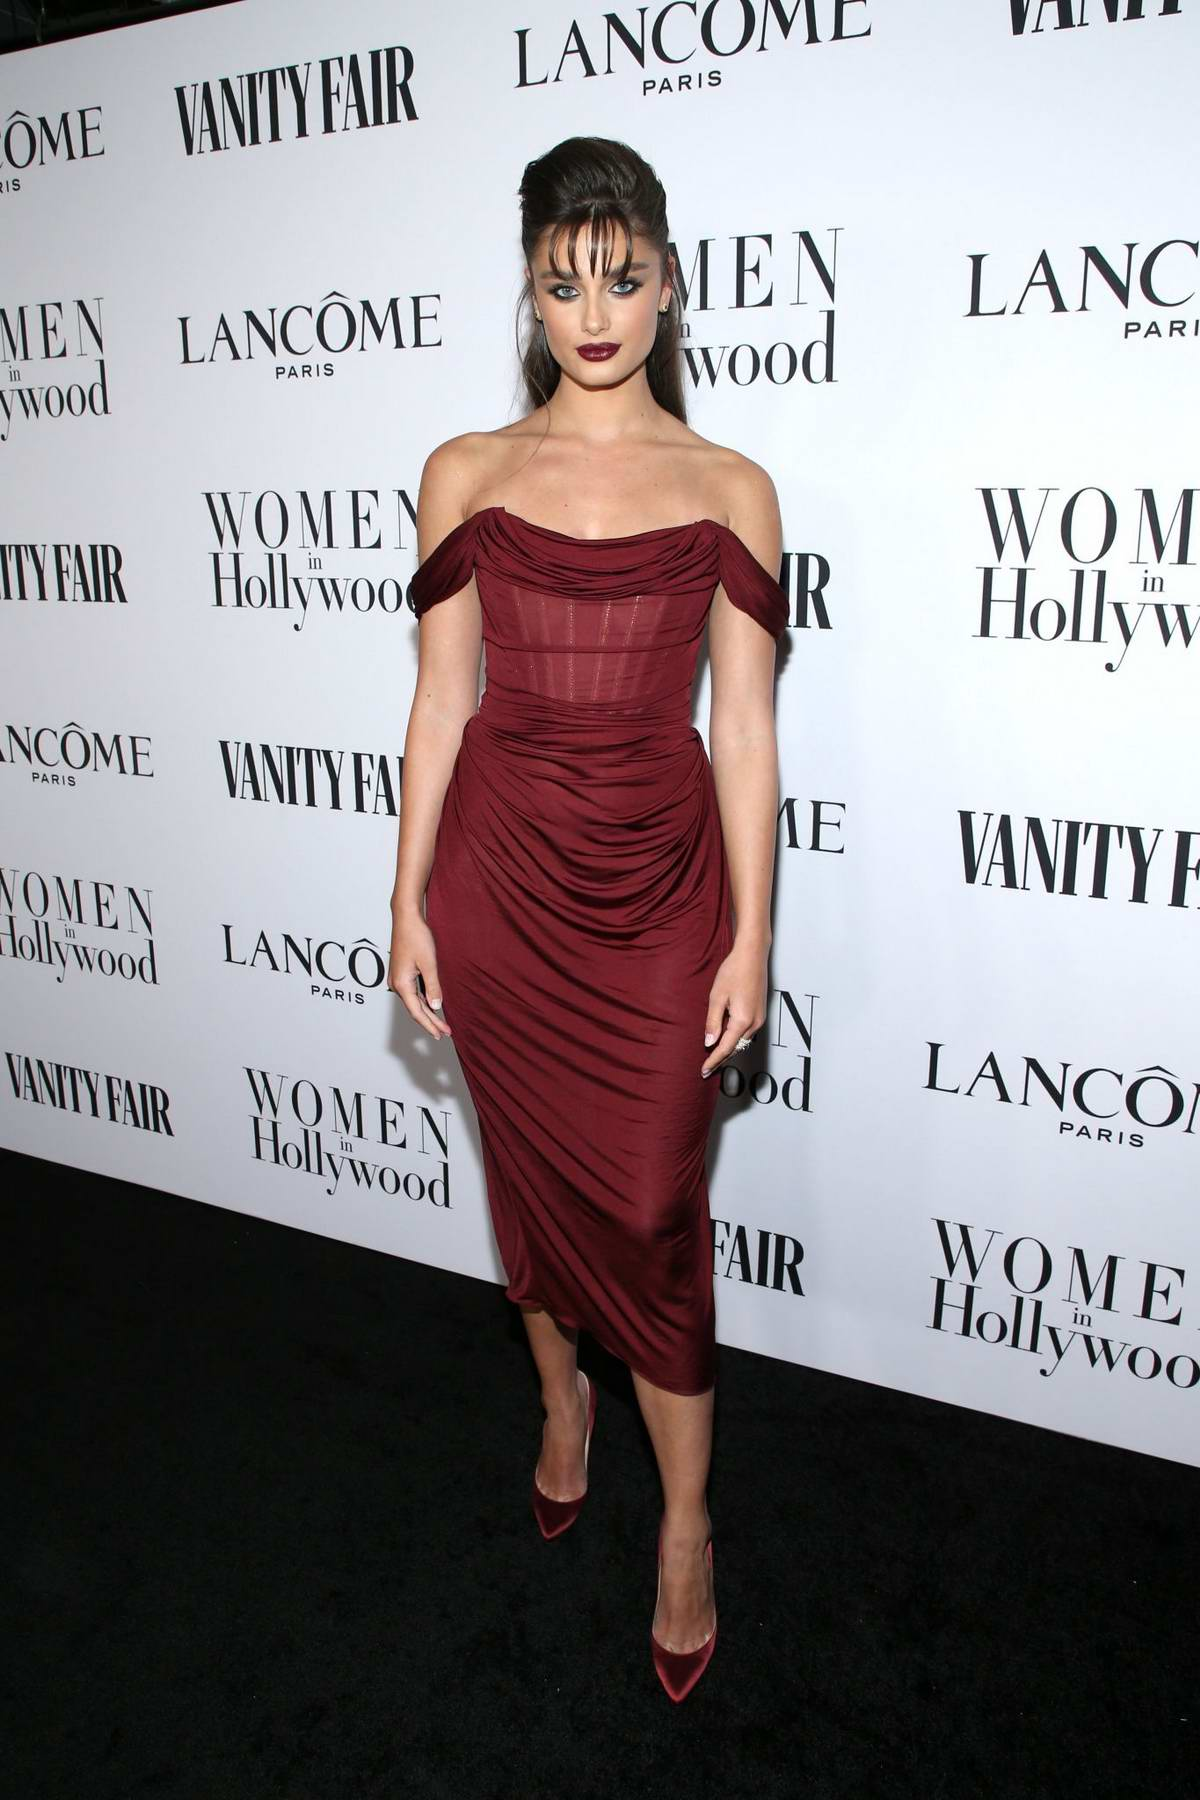 Taylor Hill attends the Vanity Fair and Lancome Women in Hollywood Celebration in West Hollywood, California